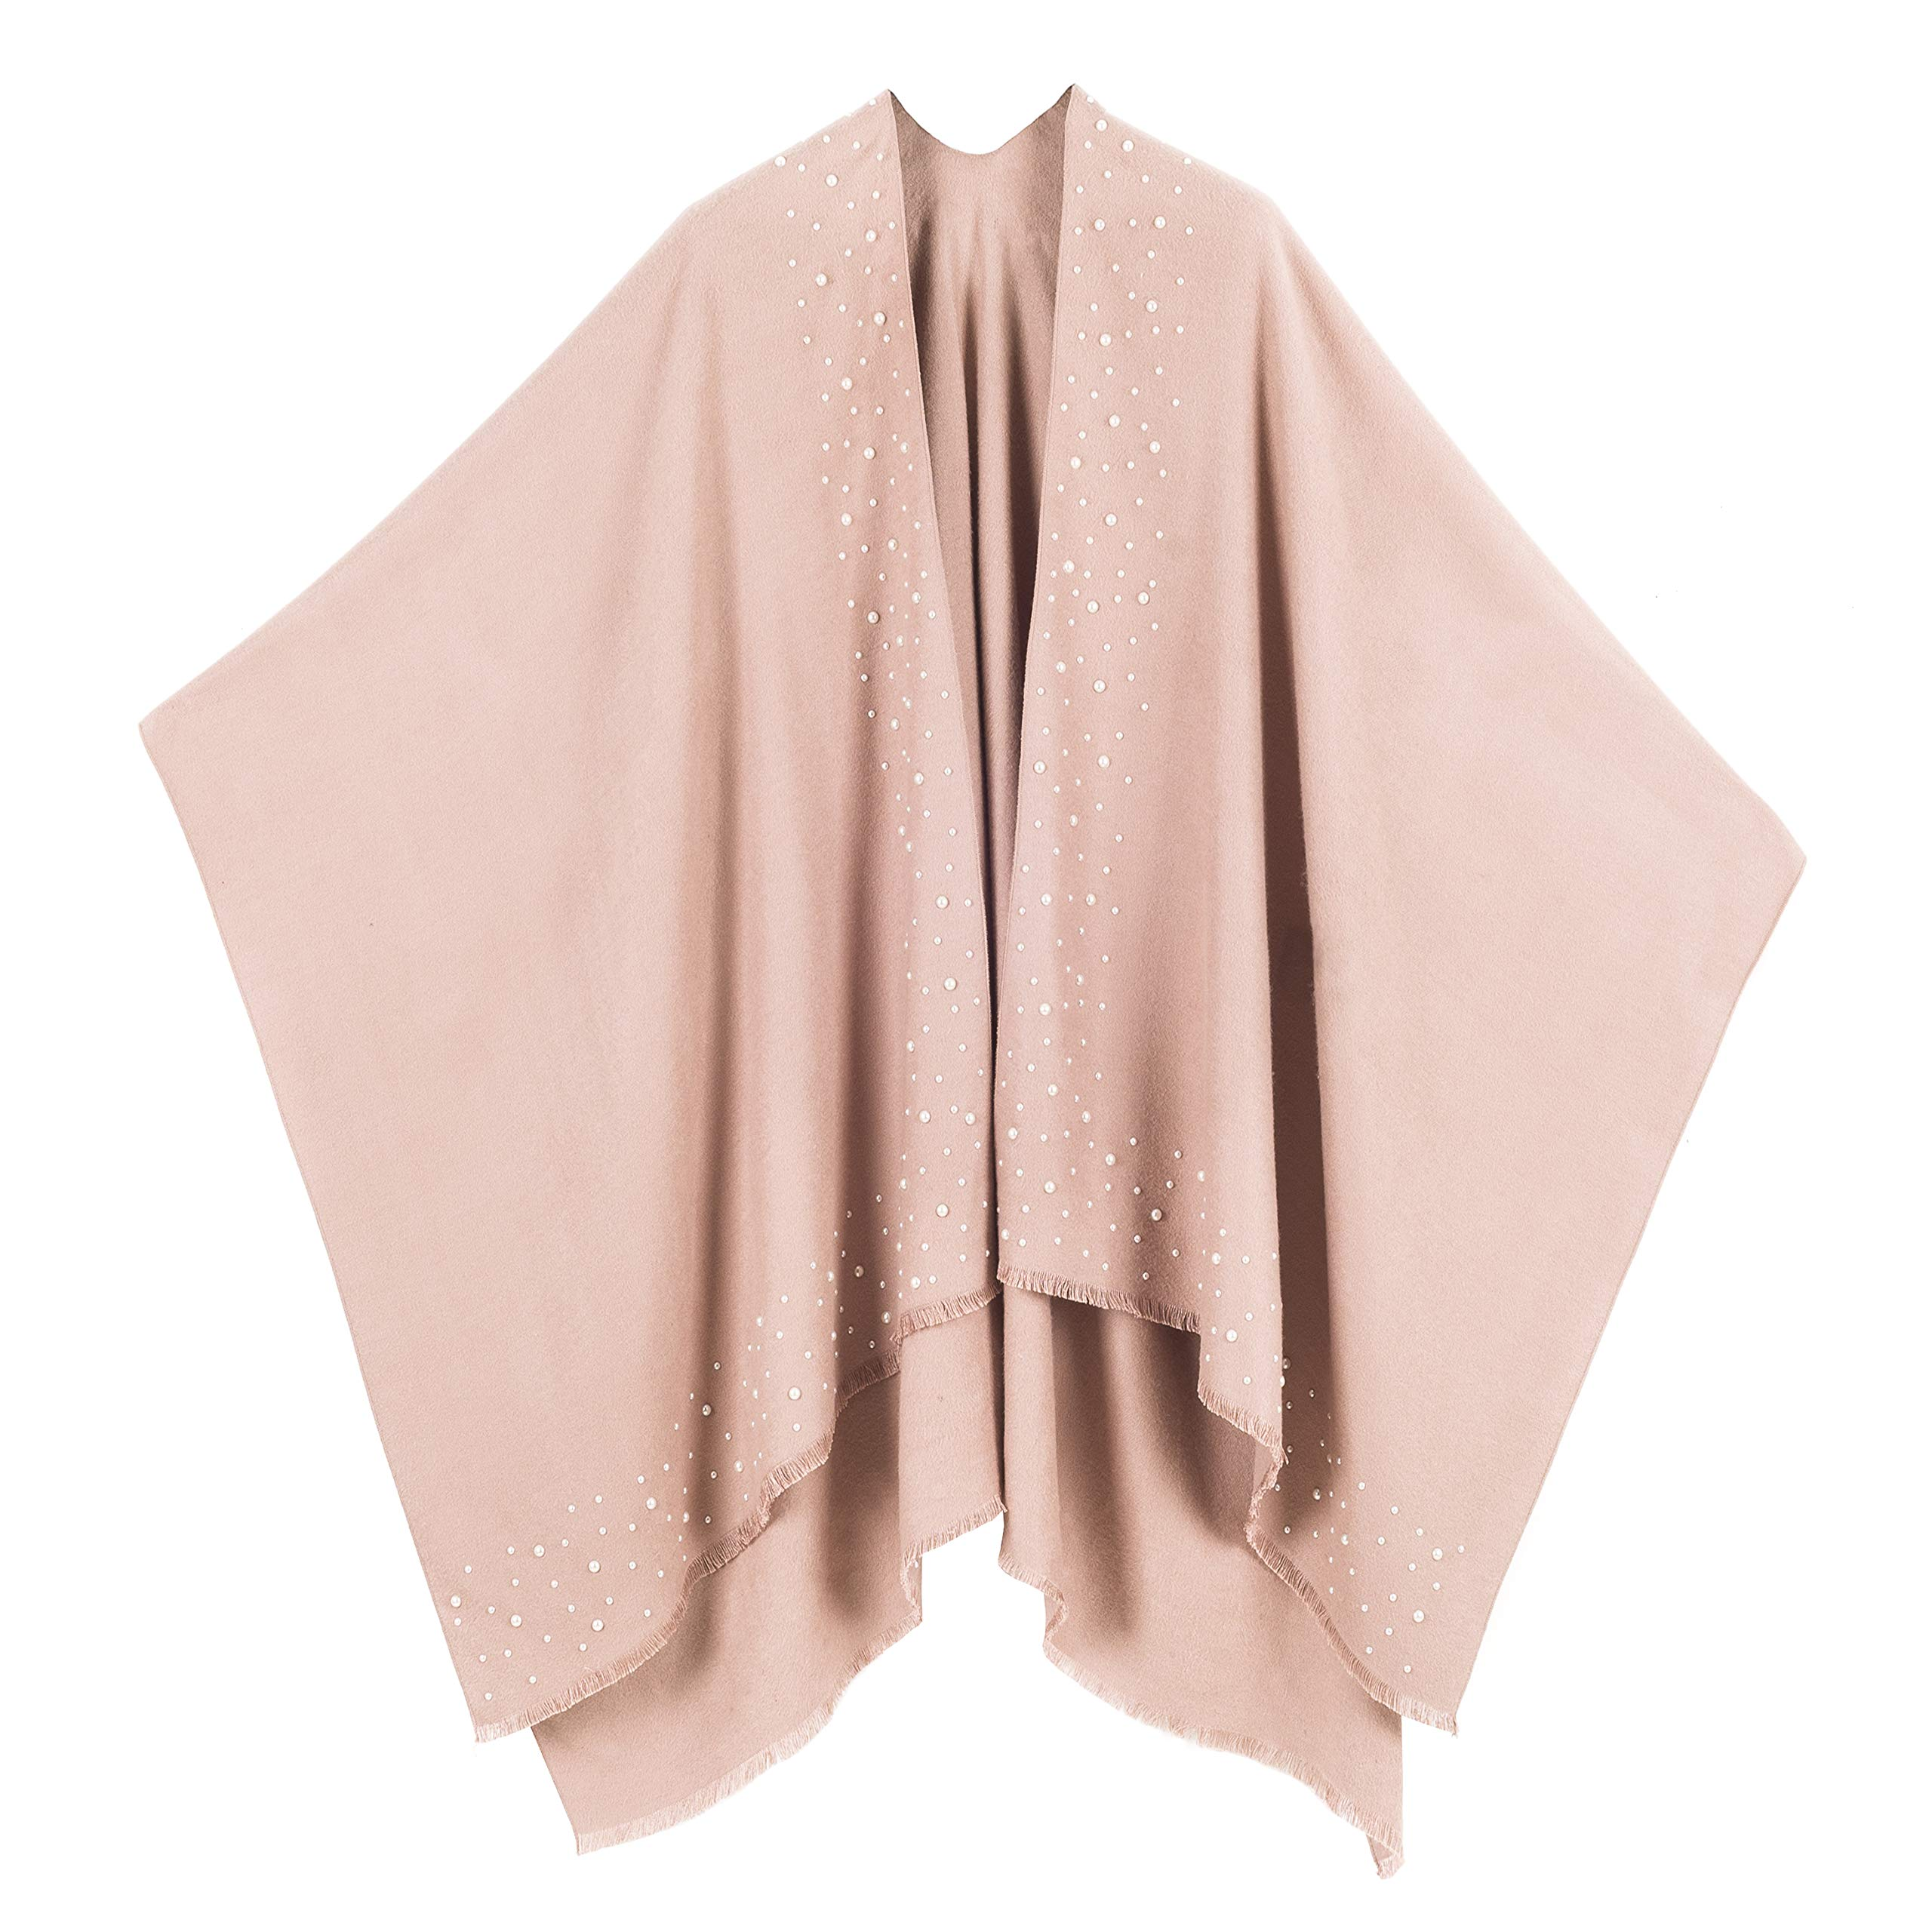 Cardigan Poncho Cape: Women Elegant Beige with Pearl Cardigan Shawl Wrap Sweater Coat for Winter (Beige with Pearl)